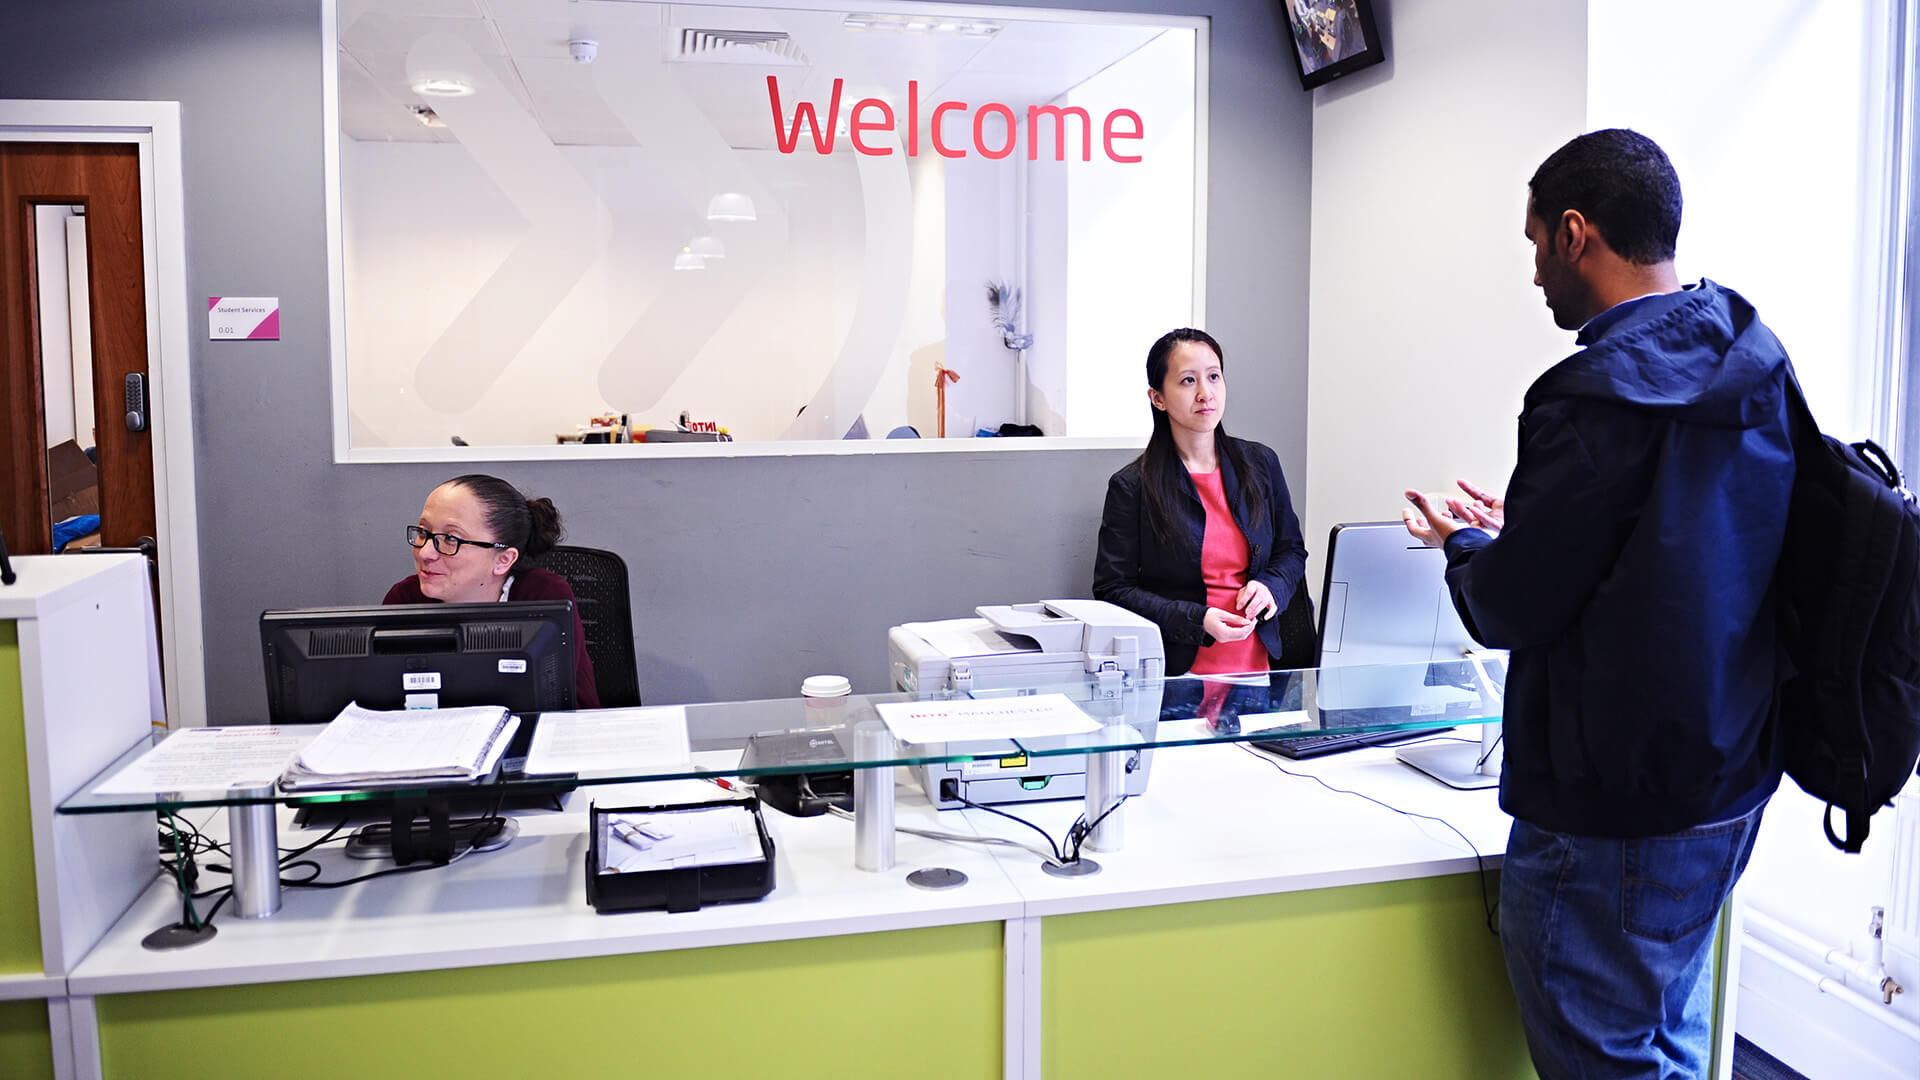 The INTO Manchester Welcome Desk is available for any questions you may have